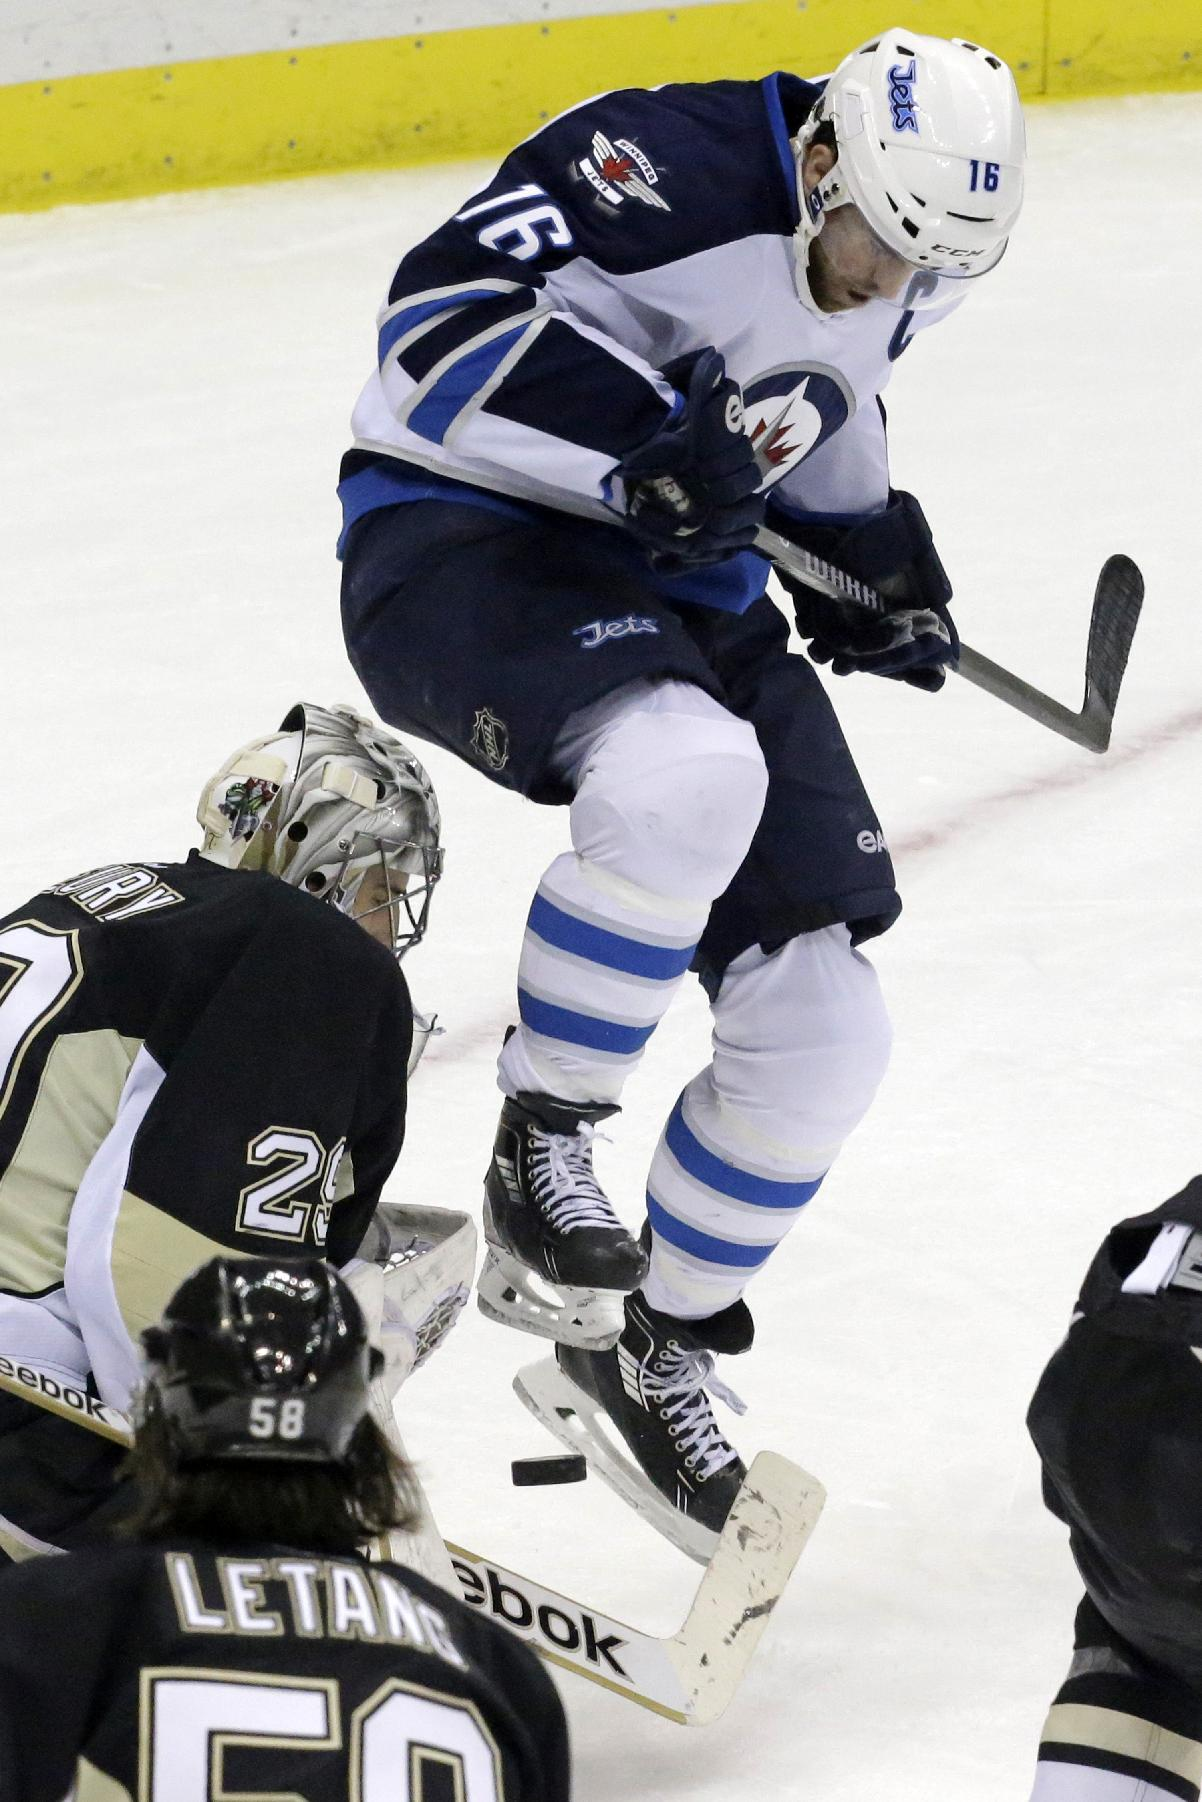 Winnipeg Jets Andrew Ladd (16) leaps out of the way of a shot in front of Pittsburgh Penguins goalie Marc-Andre Fleury (29) during the first period of an NHL hockey game in Pittsburgh, Sunday, Jan. 5, 2014